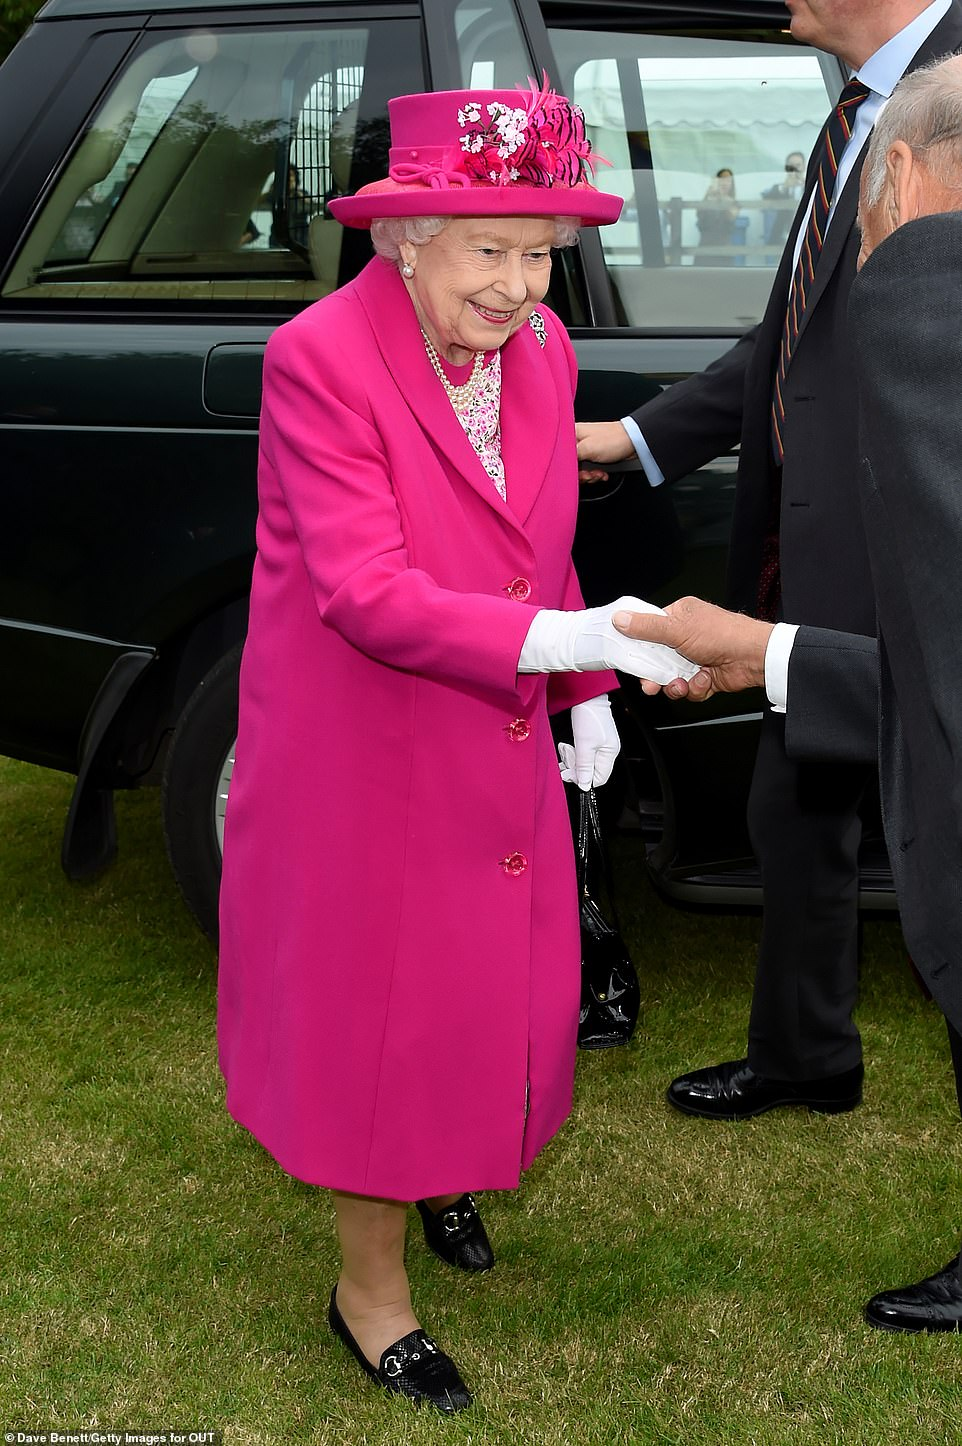 Shock As Polo Goer S Clothing Blows Into Queen S Face At Royal Windsor Royal Cup Final Royal Family England